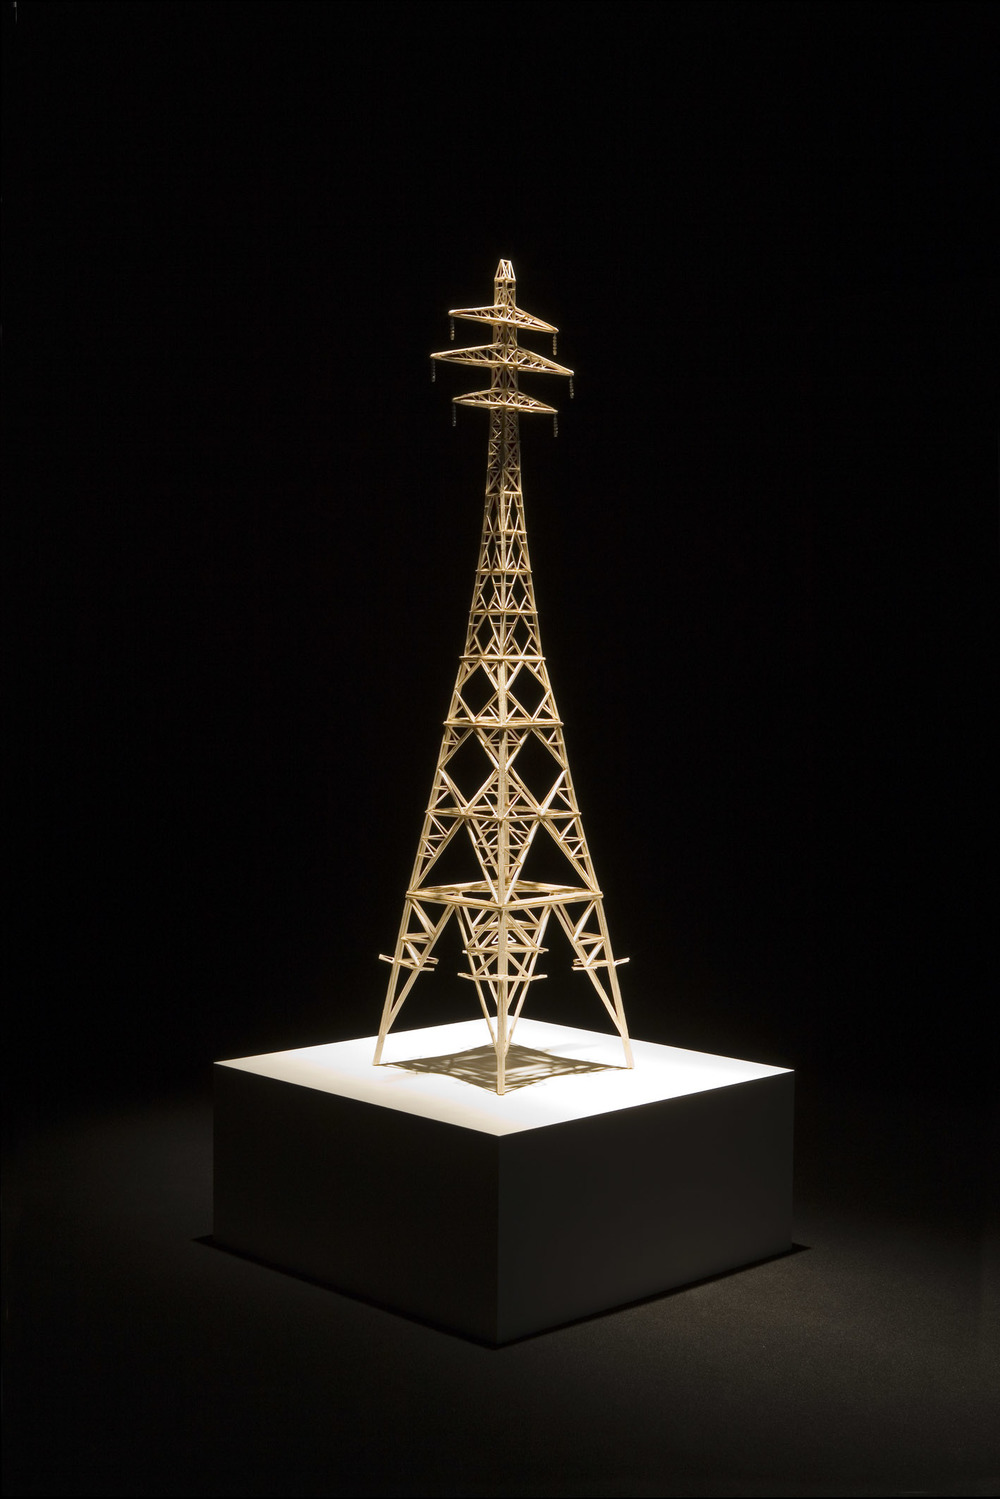 The Explosion Point of Ideology 2008 Matchsticks and glue 172.5 x 40 x 40 cm / 67.9 x 15.7 x 15.7 in